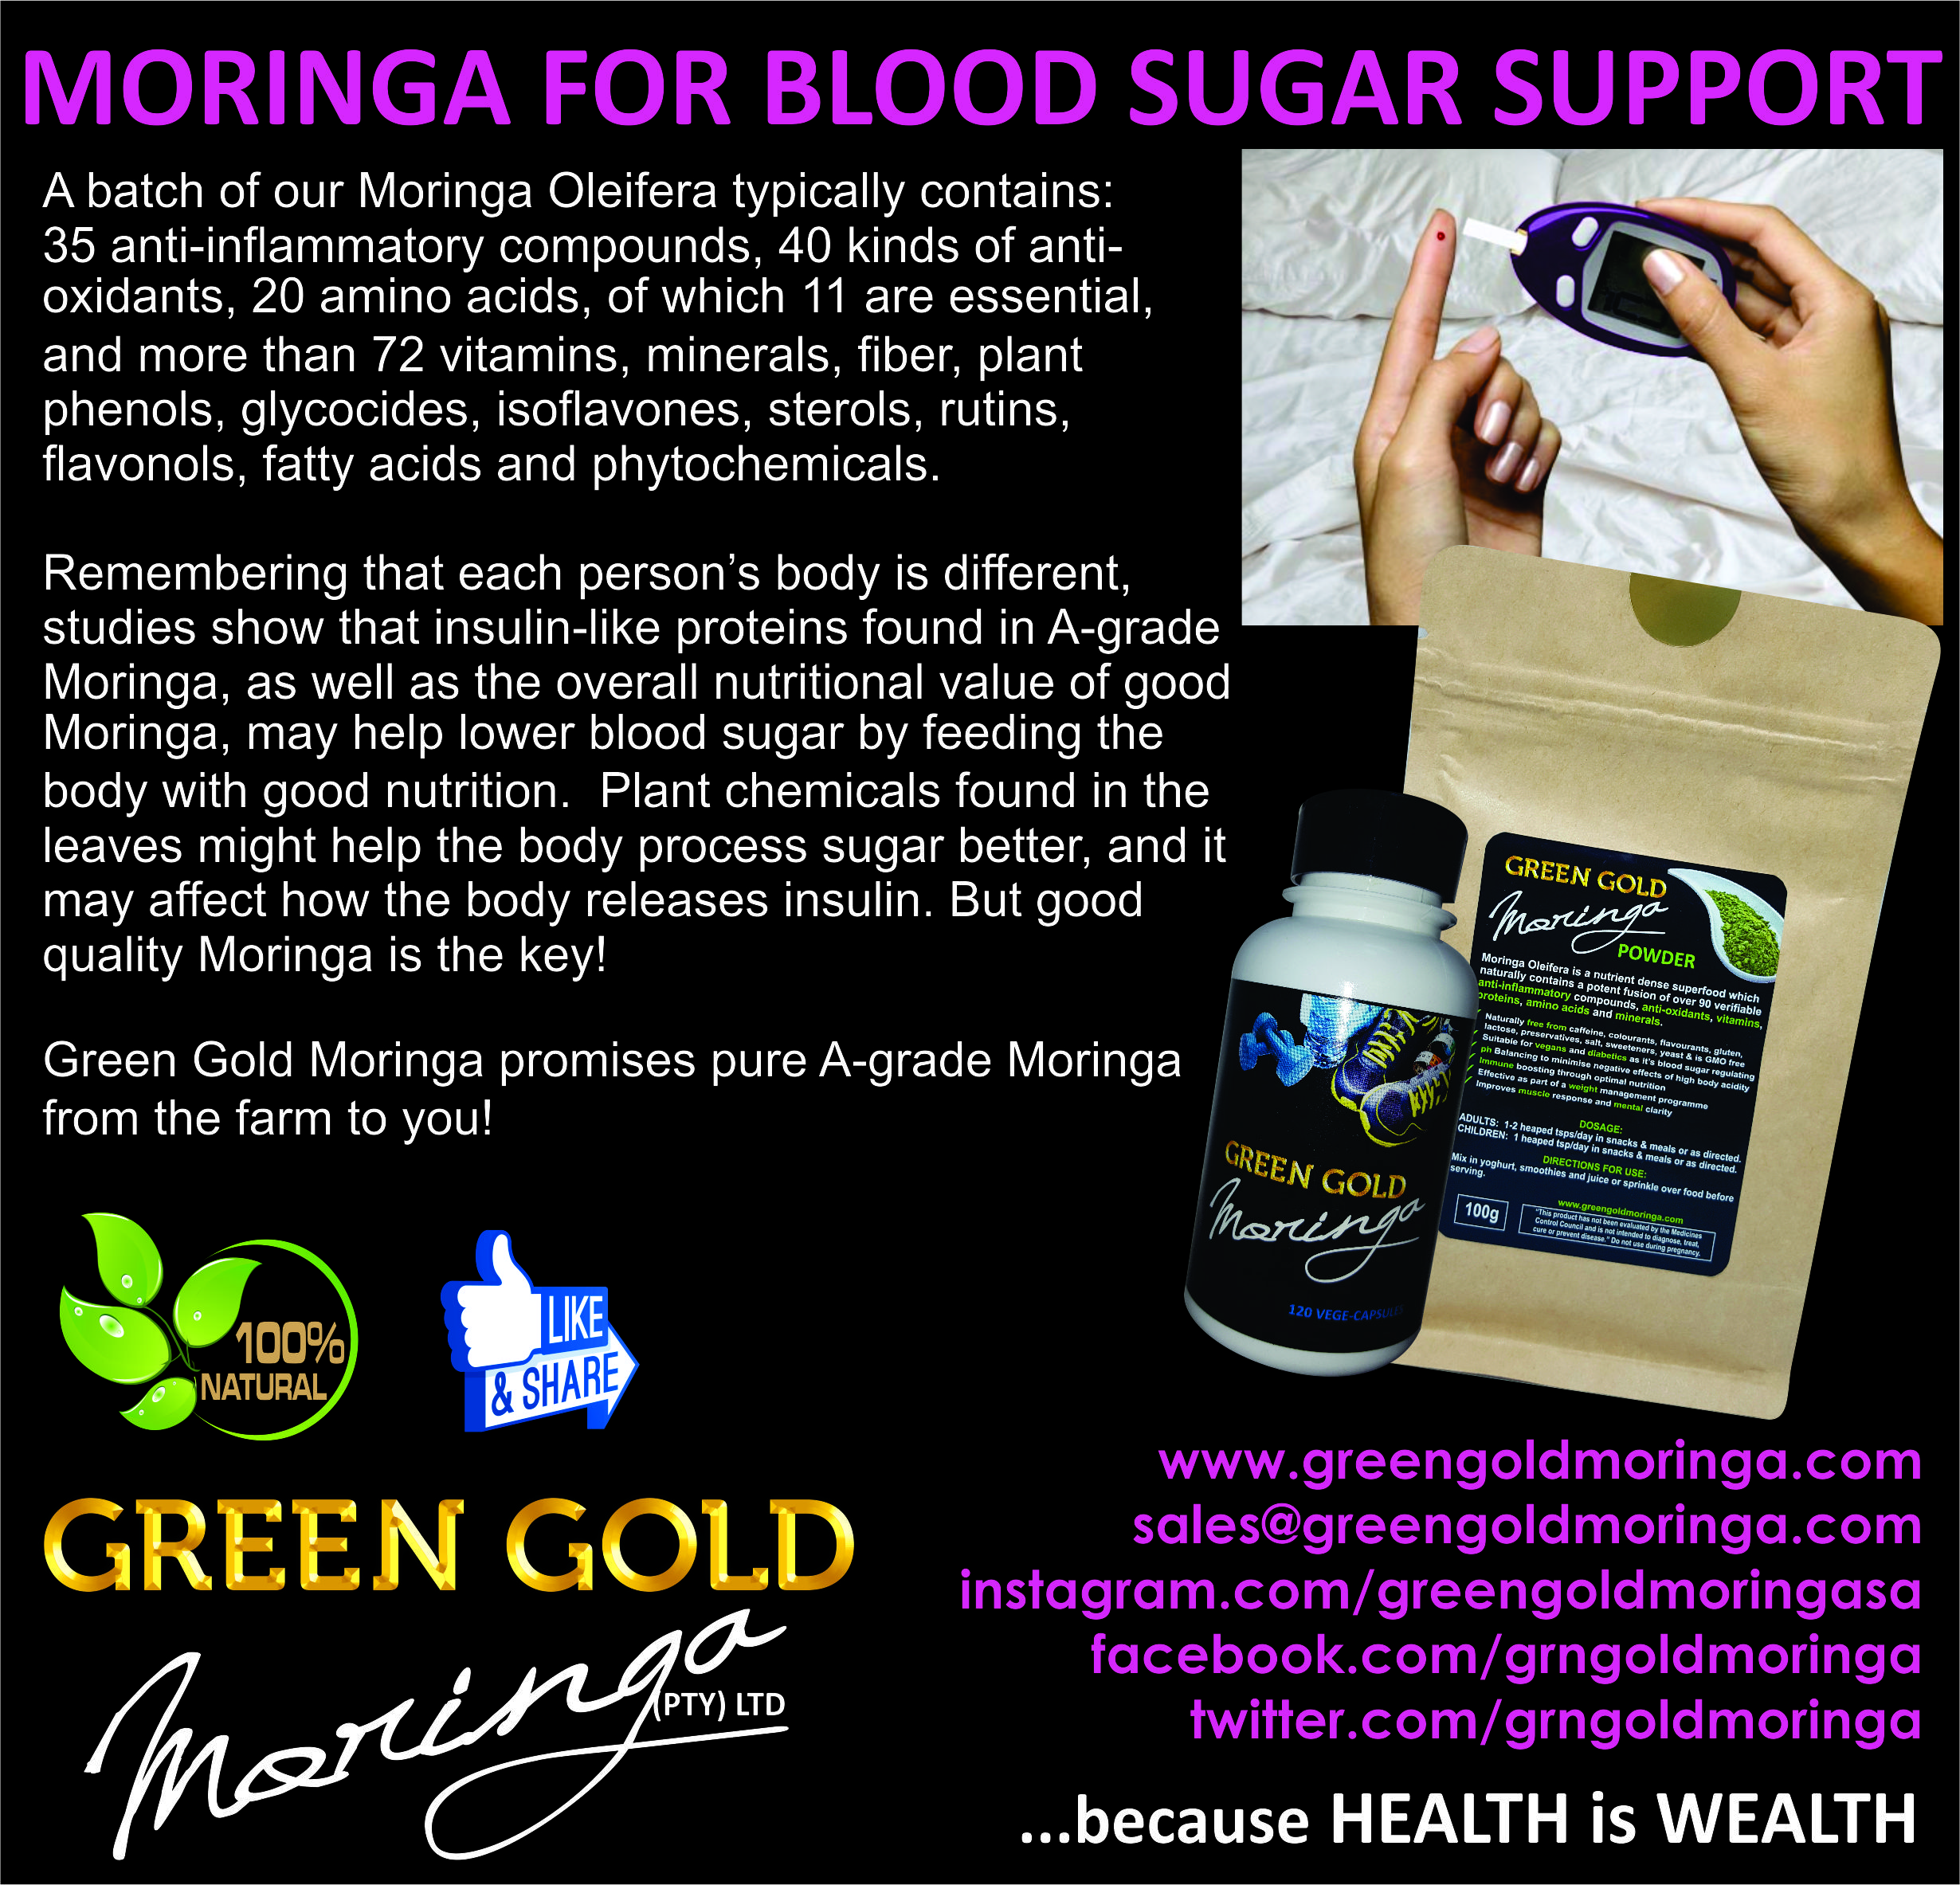 Green Gold Moringa products for Blood Sugar Control